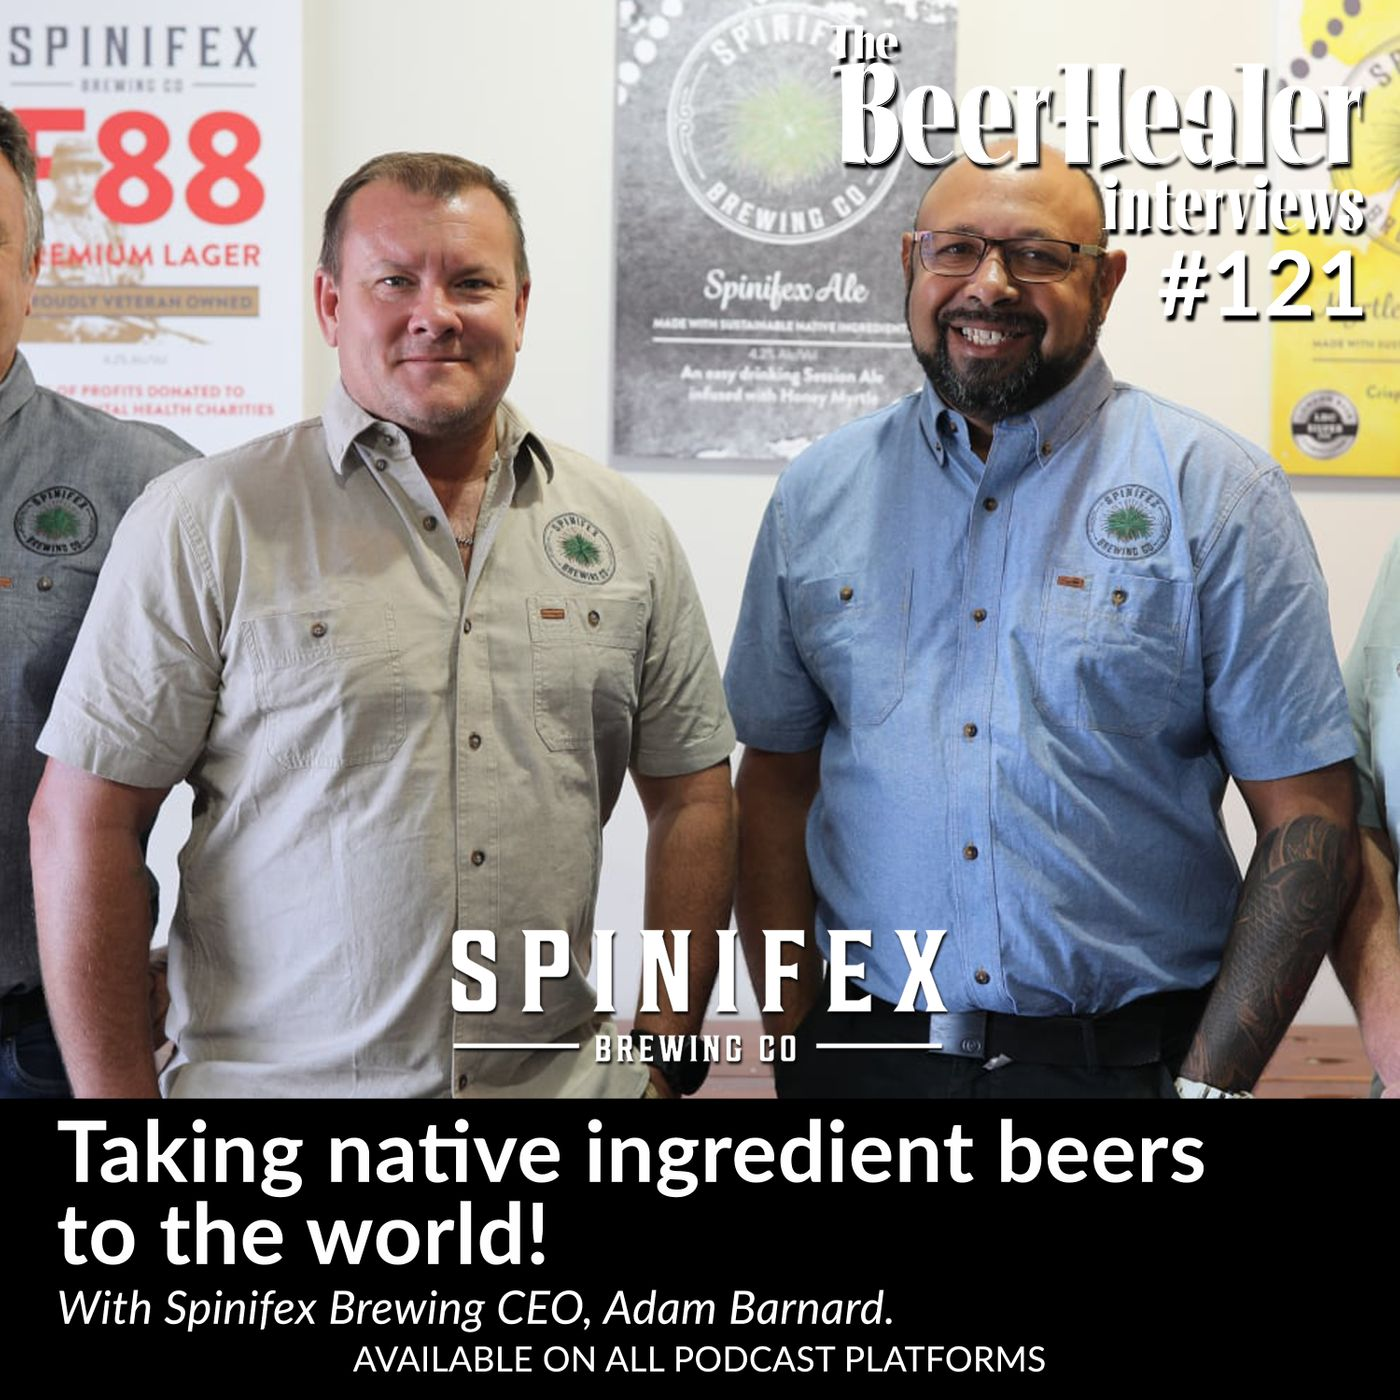 Ep. 121 - Taking native ingredient beers to the world! With Spinifex Brewing CEO, Adam Barnard.